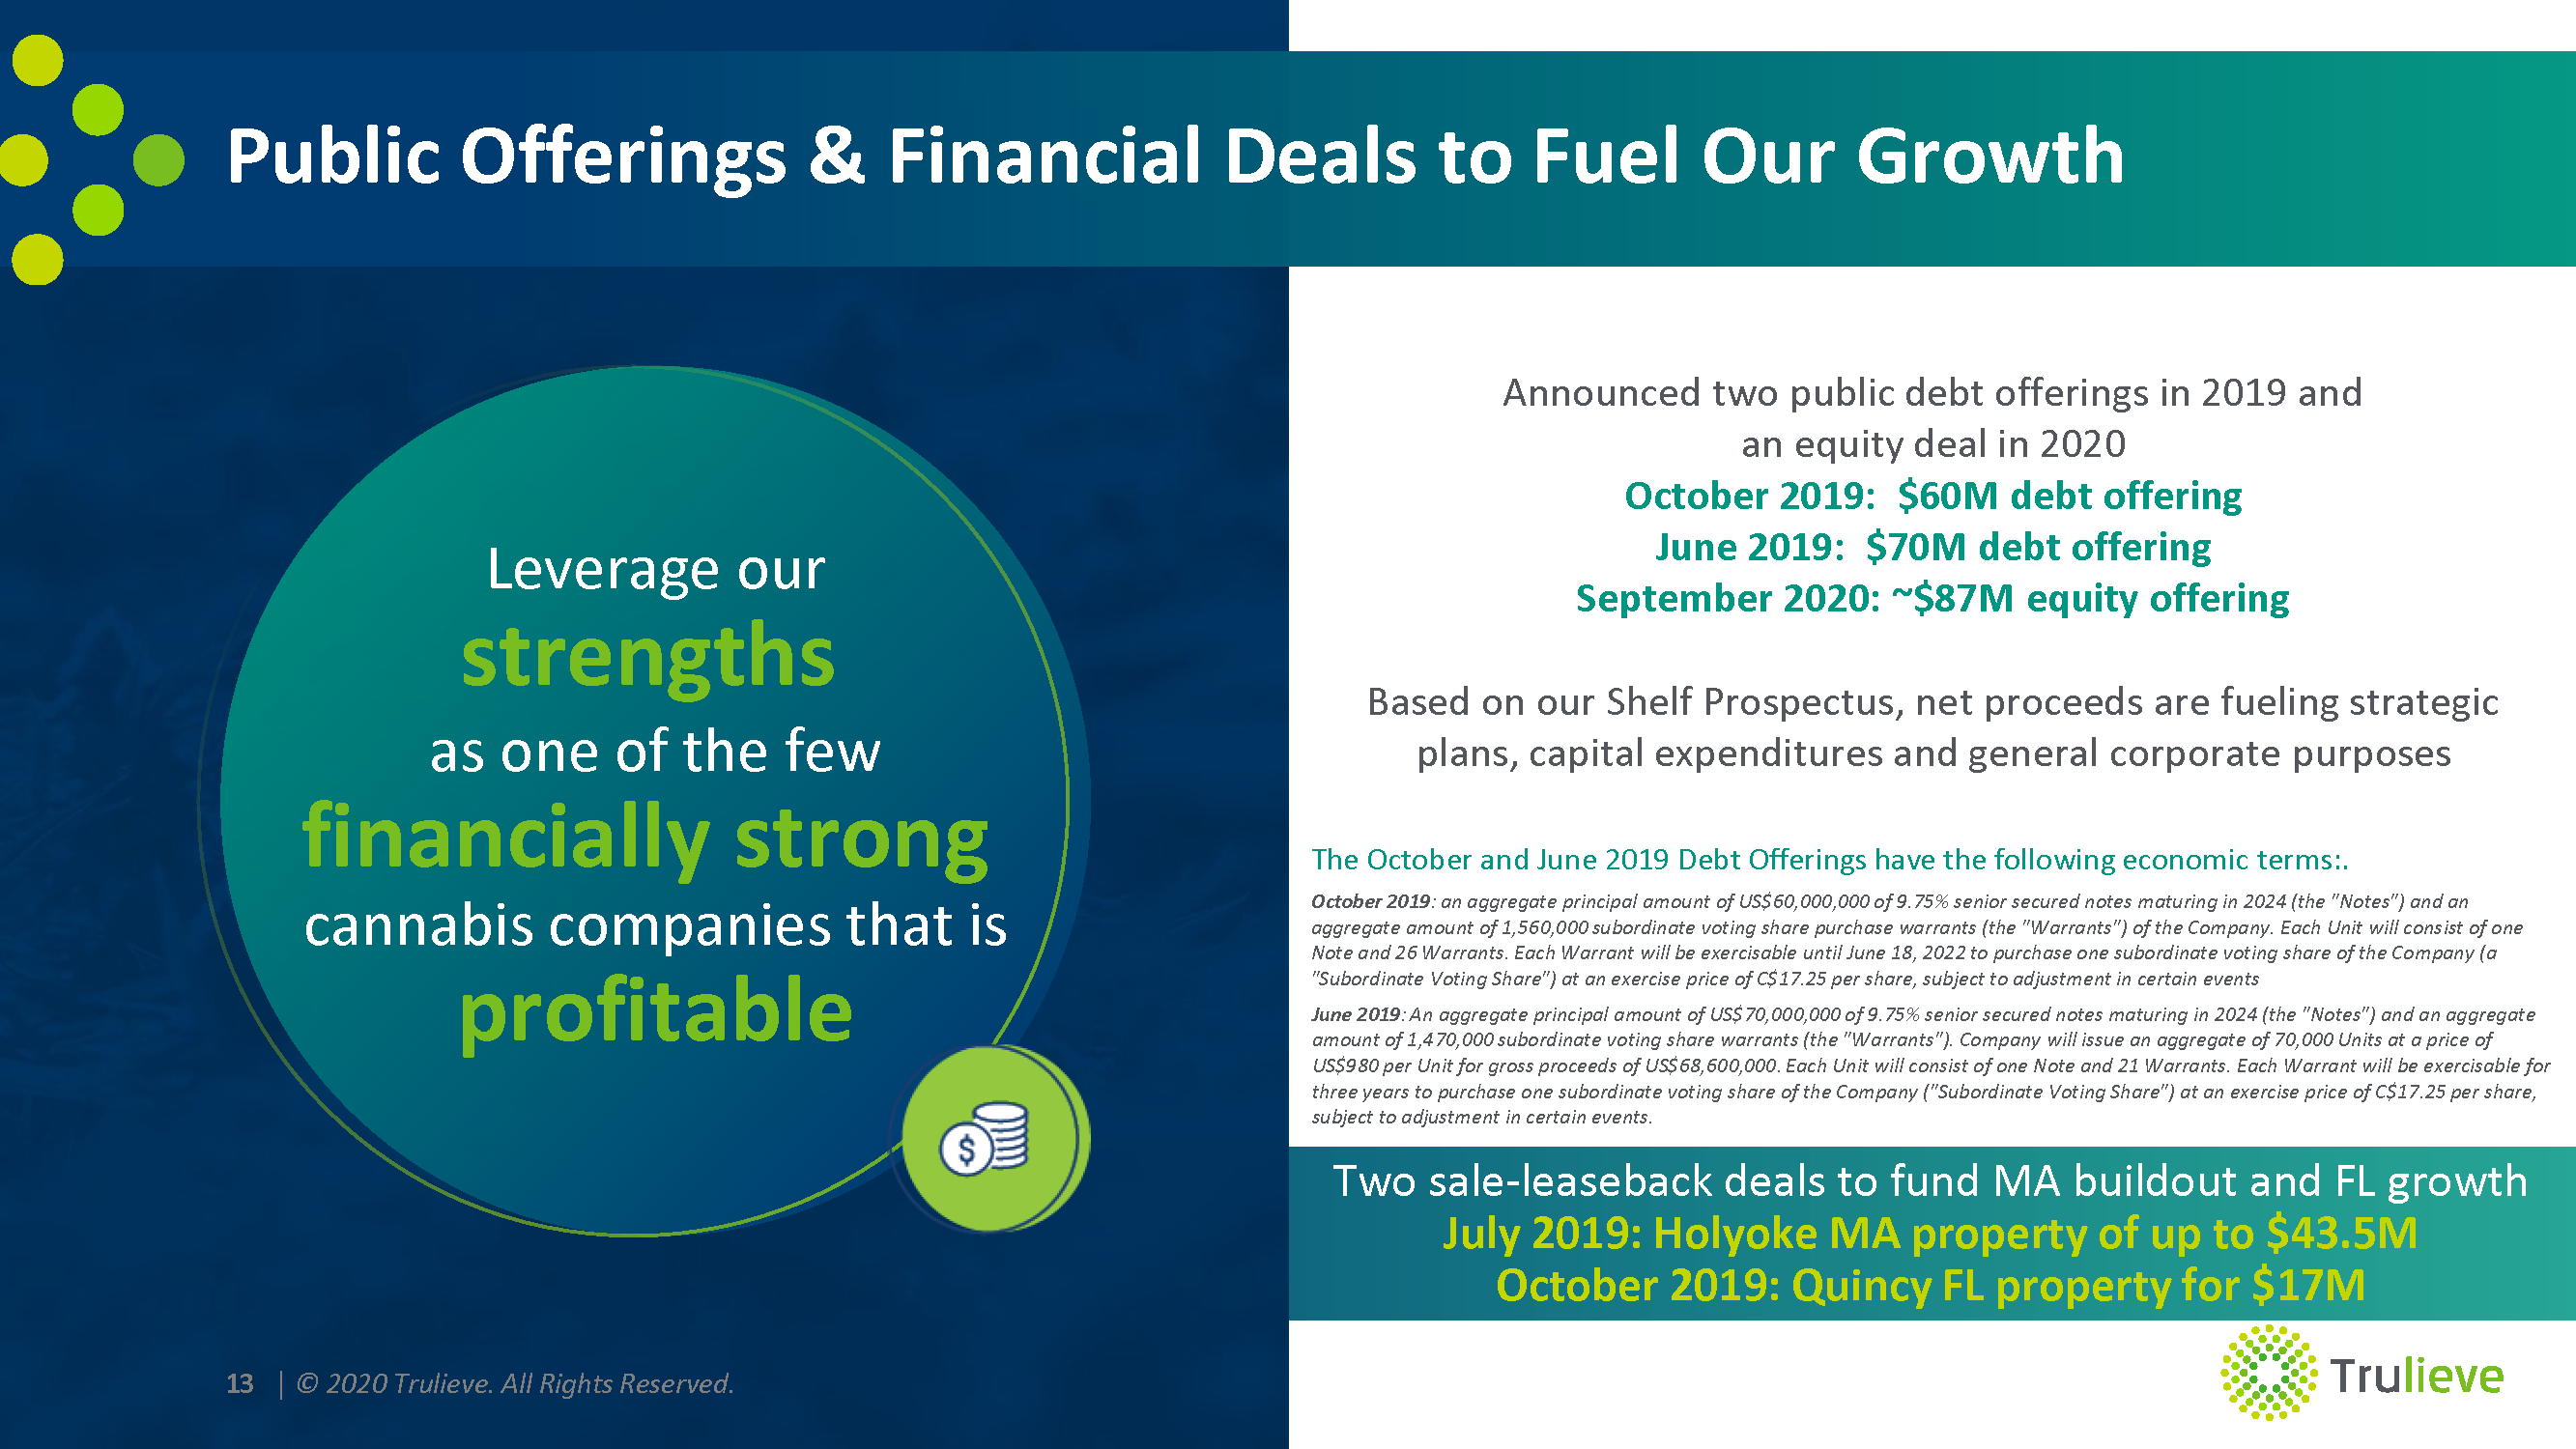 images/featured-companies/trulieve/deck/Trulieve IR Deck Oct 2020_102420_Page_13.png